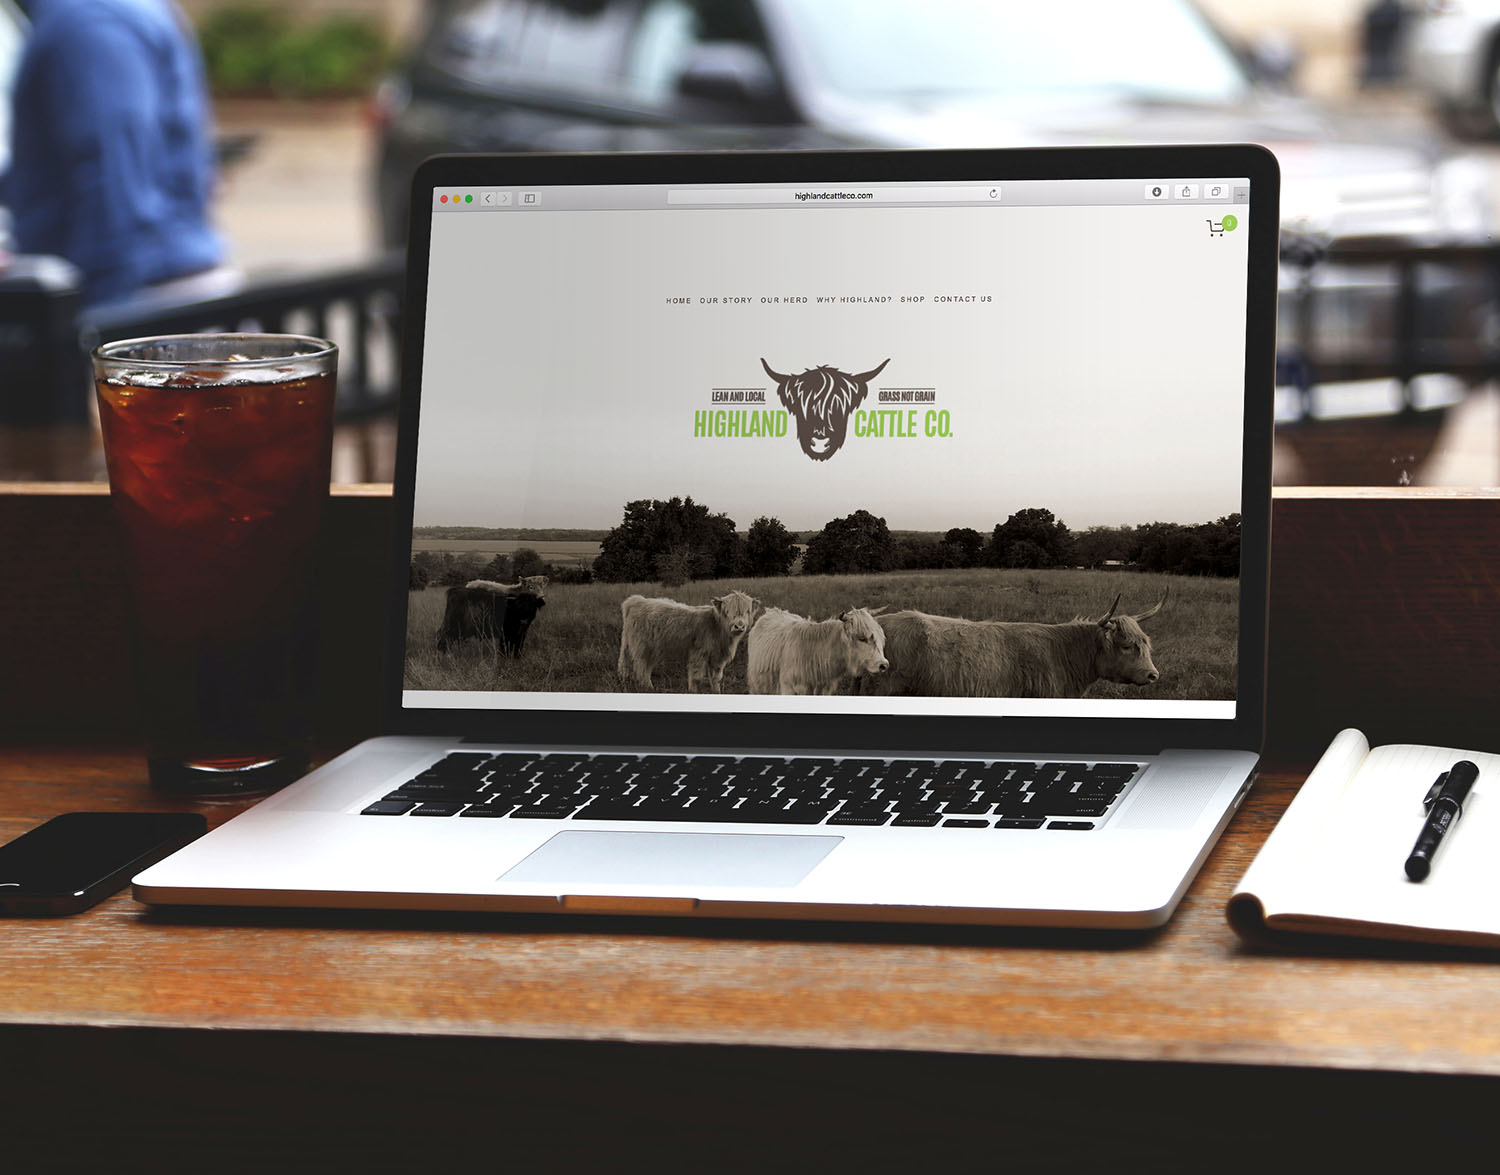 Highland Cattle Co. Website